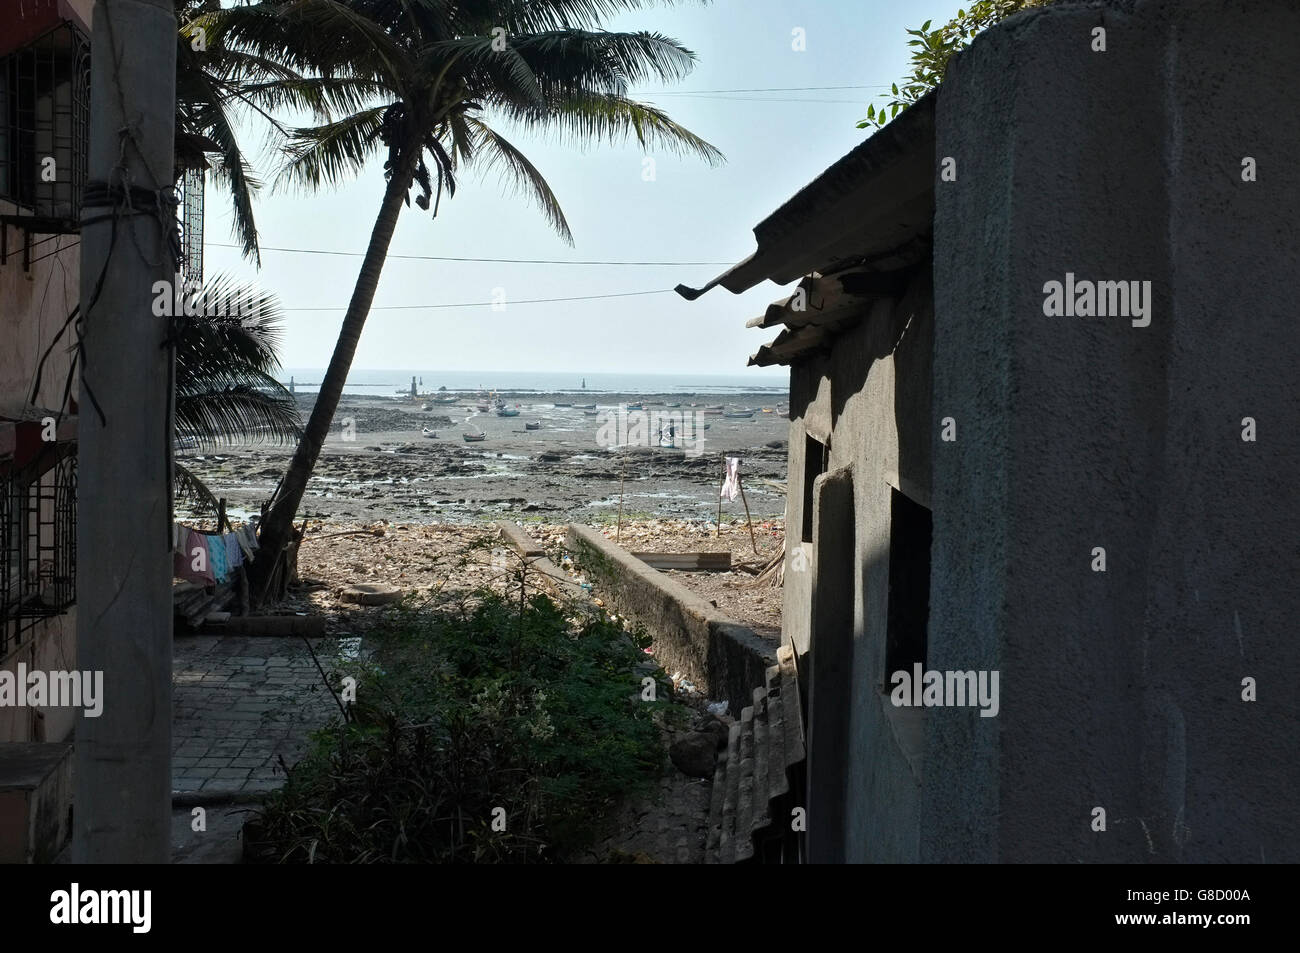 the beach front at the area of chimbai village, bandra, mumbai, india - Stock Image